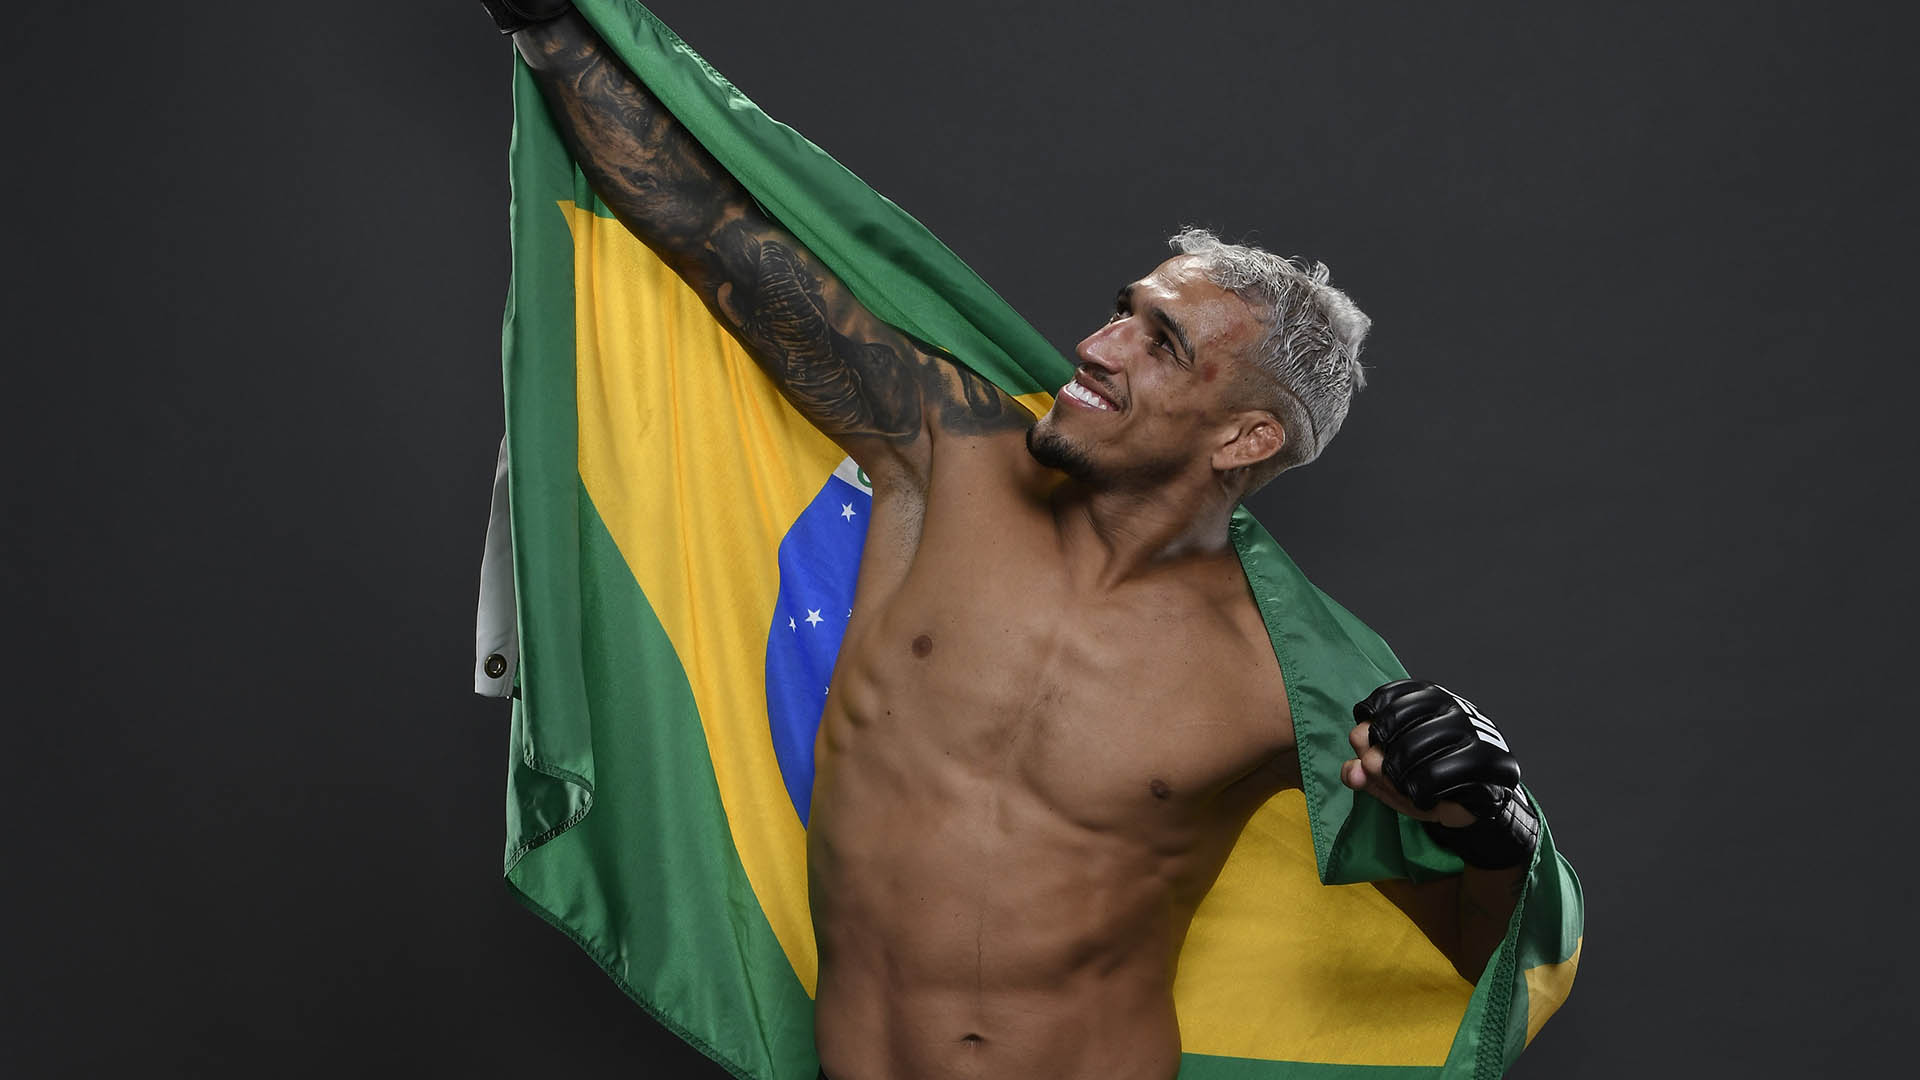 Charles Oliveira of Brazil poses for a portrait backstage after his victory during the UFC Fight Night event on March 14, 2020 in Brasilia, Brazil. (Photo by Mike Roach/Zuffa LLC)